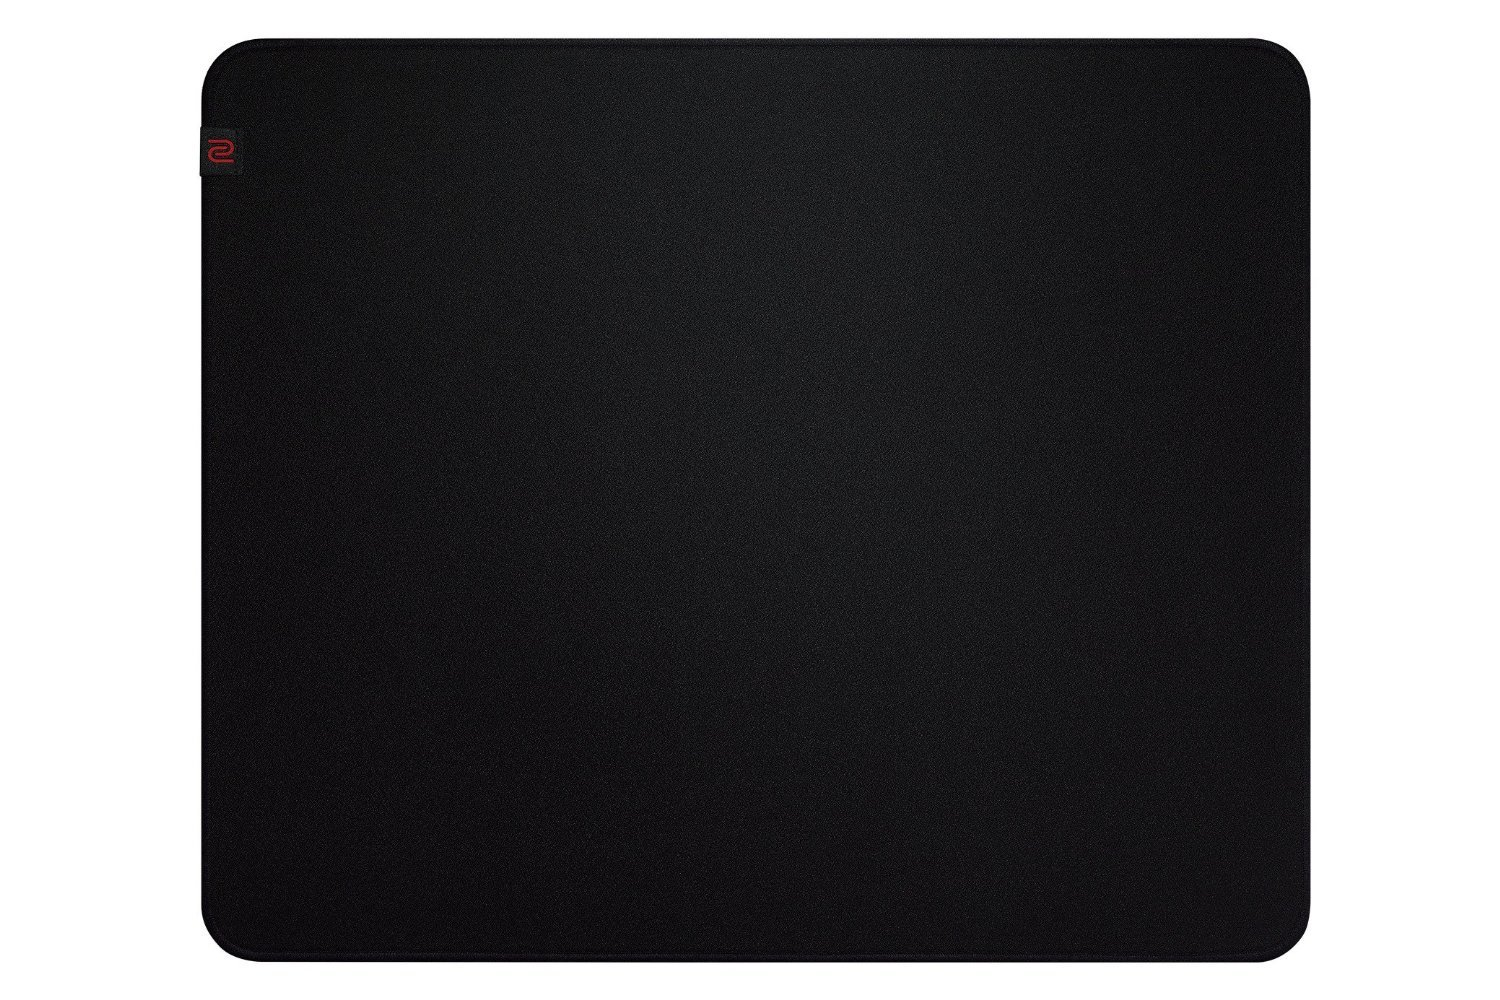 Zowie GTF-X Gaming Mouse Pad (Large) for PC Games image